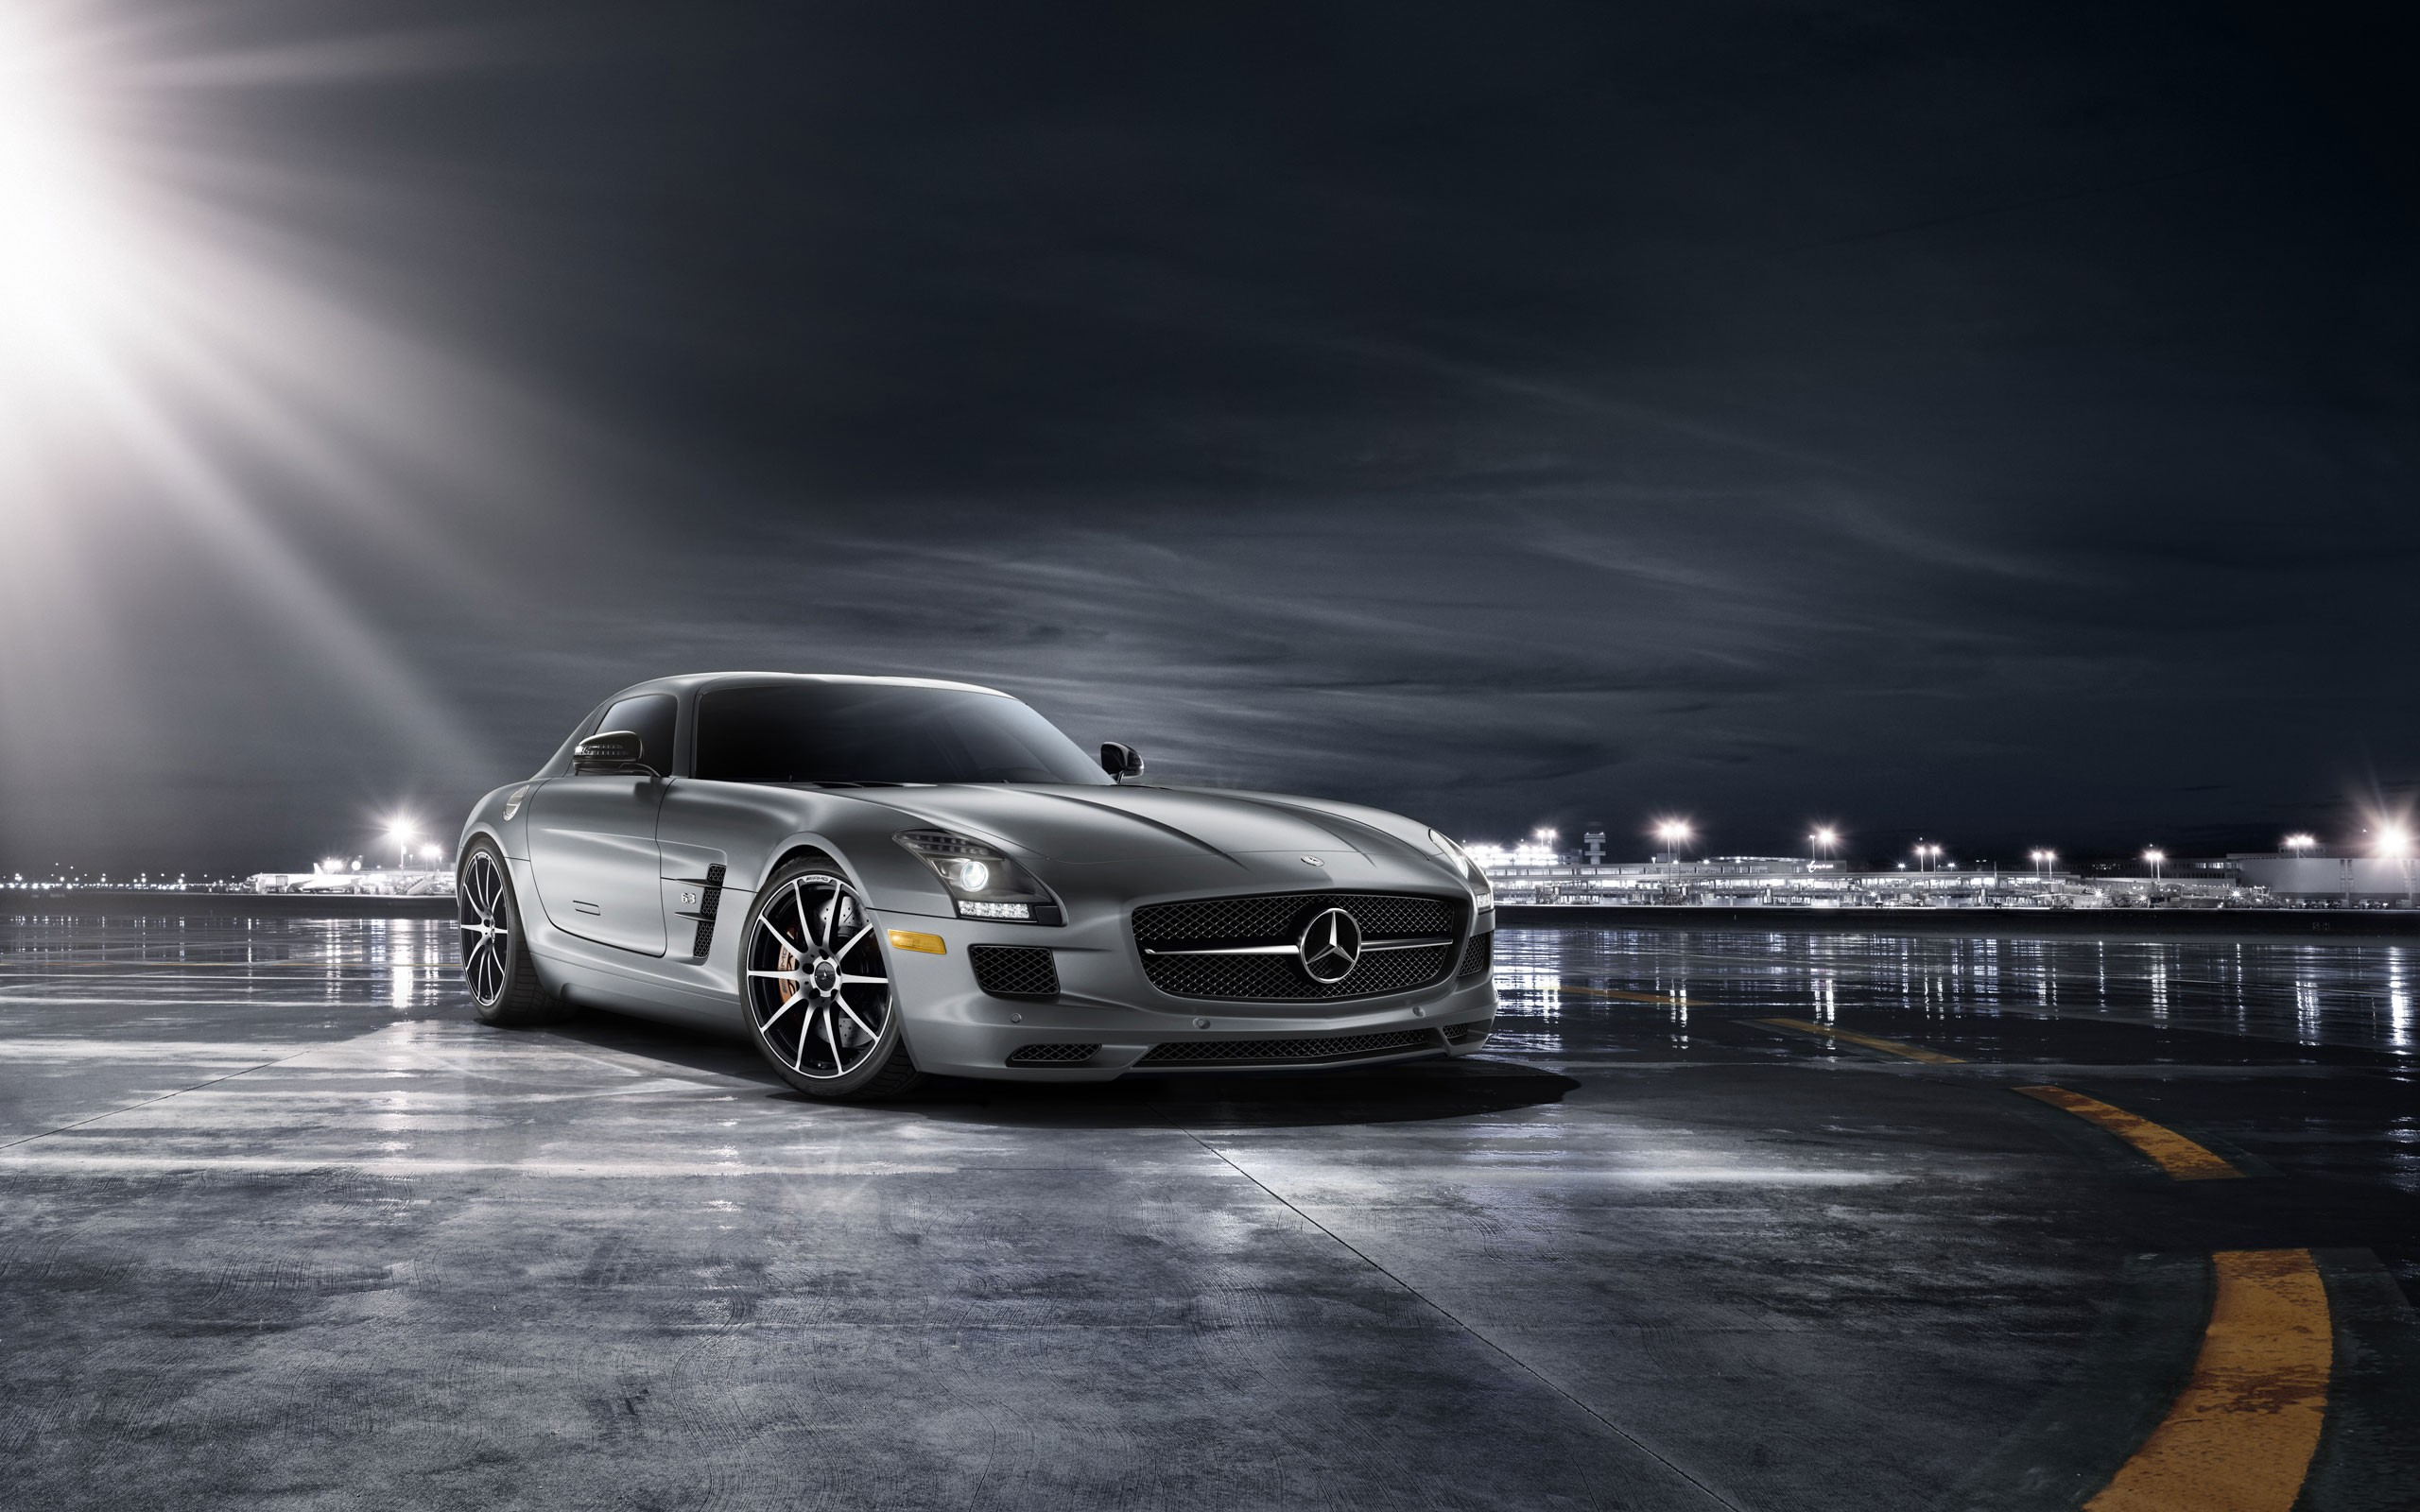 Mercedes Sports Cars Wallpapers Daily Wallpaper Mercedes Sls Amg I Like To Waste My Time